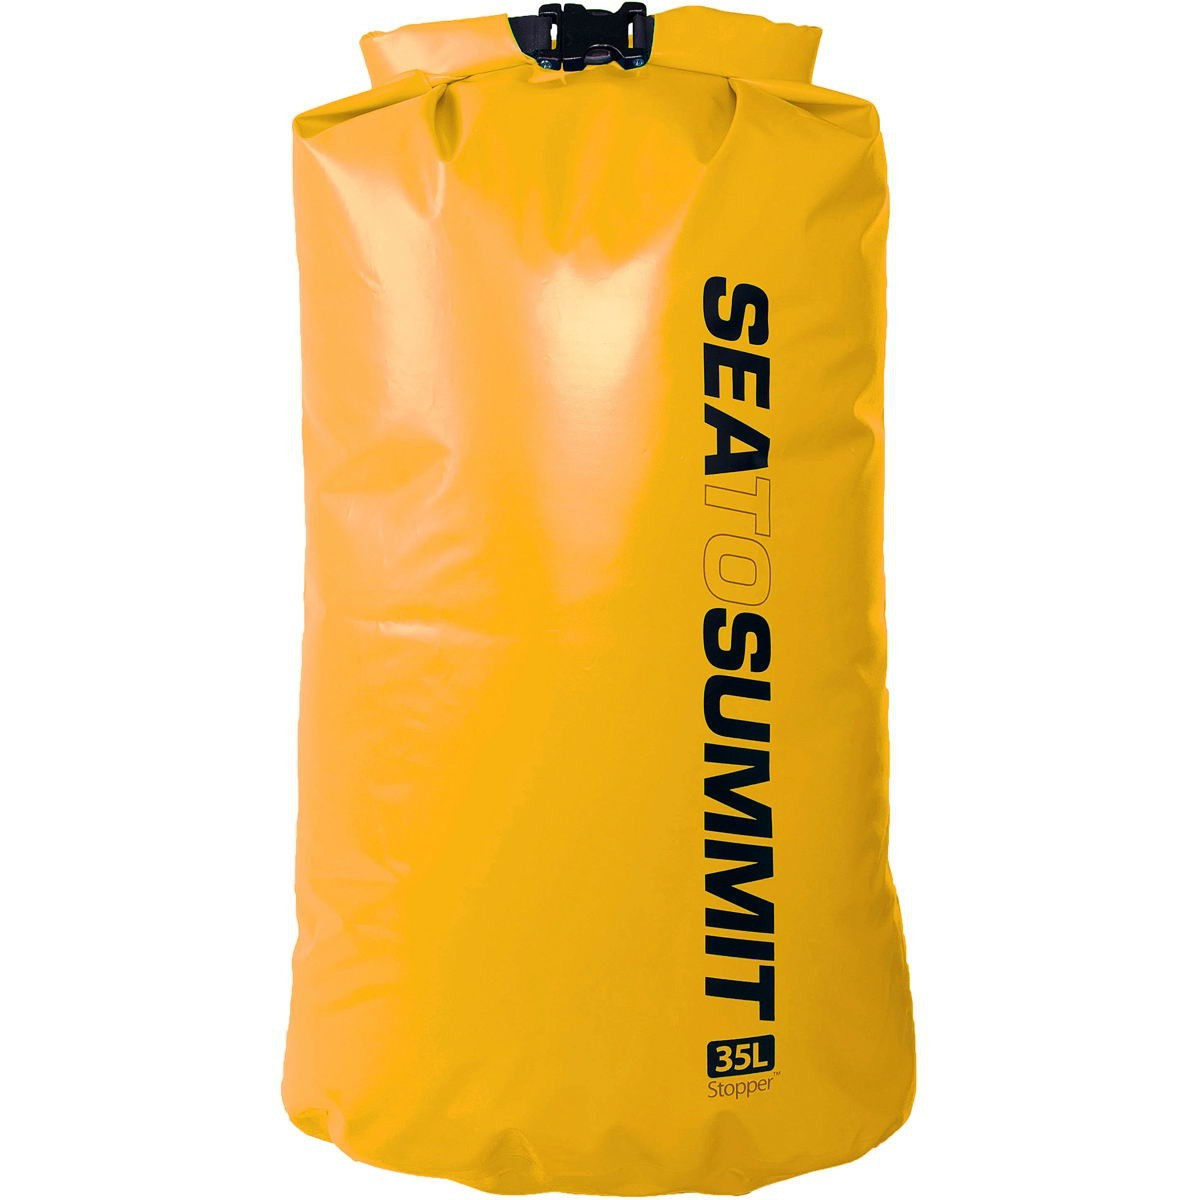 Гермомешок Sea To Summit Stopper Dry Bag 35L